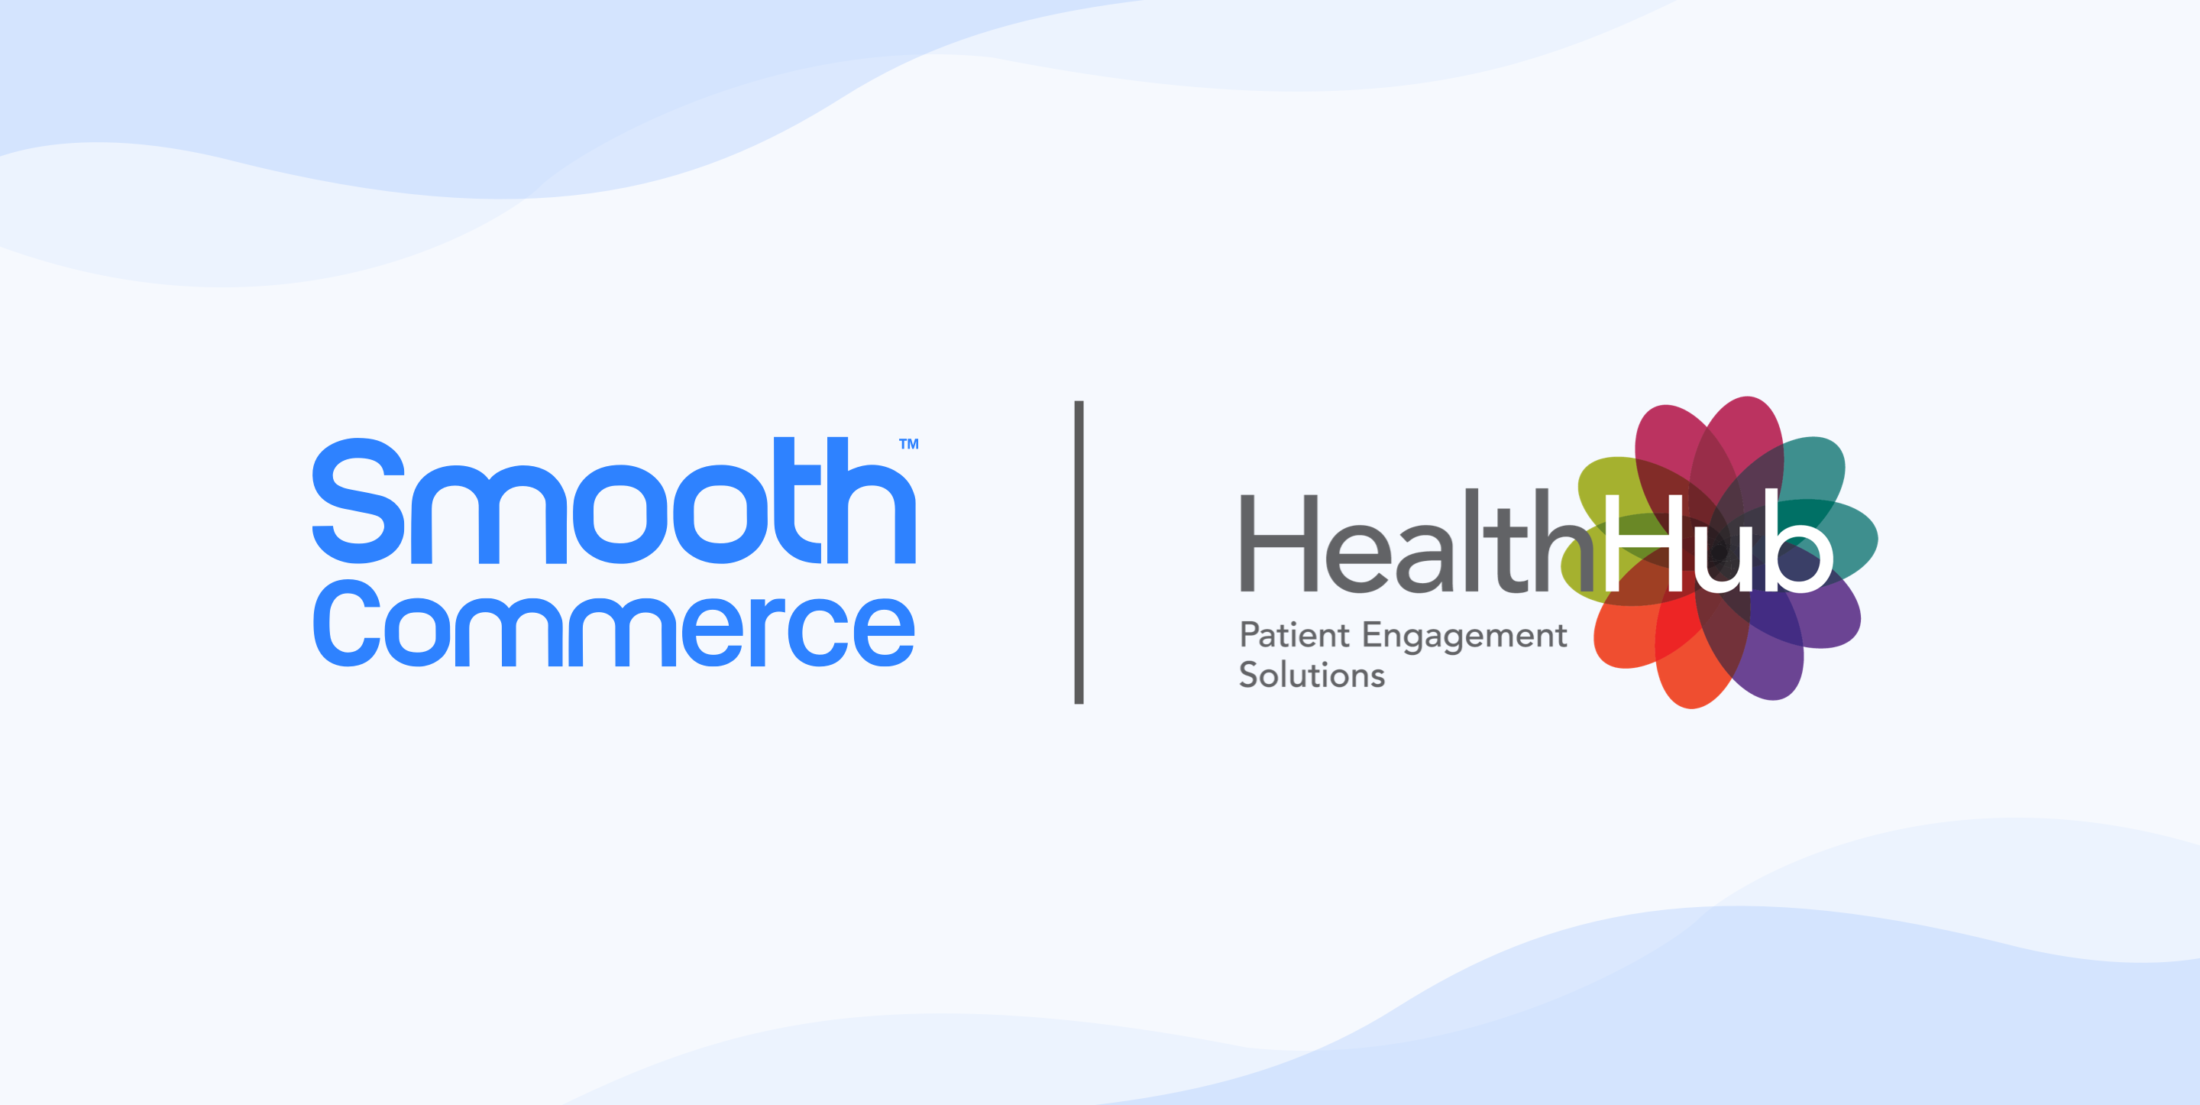 Smooth Commerce and HealthHub logos